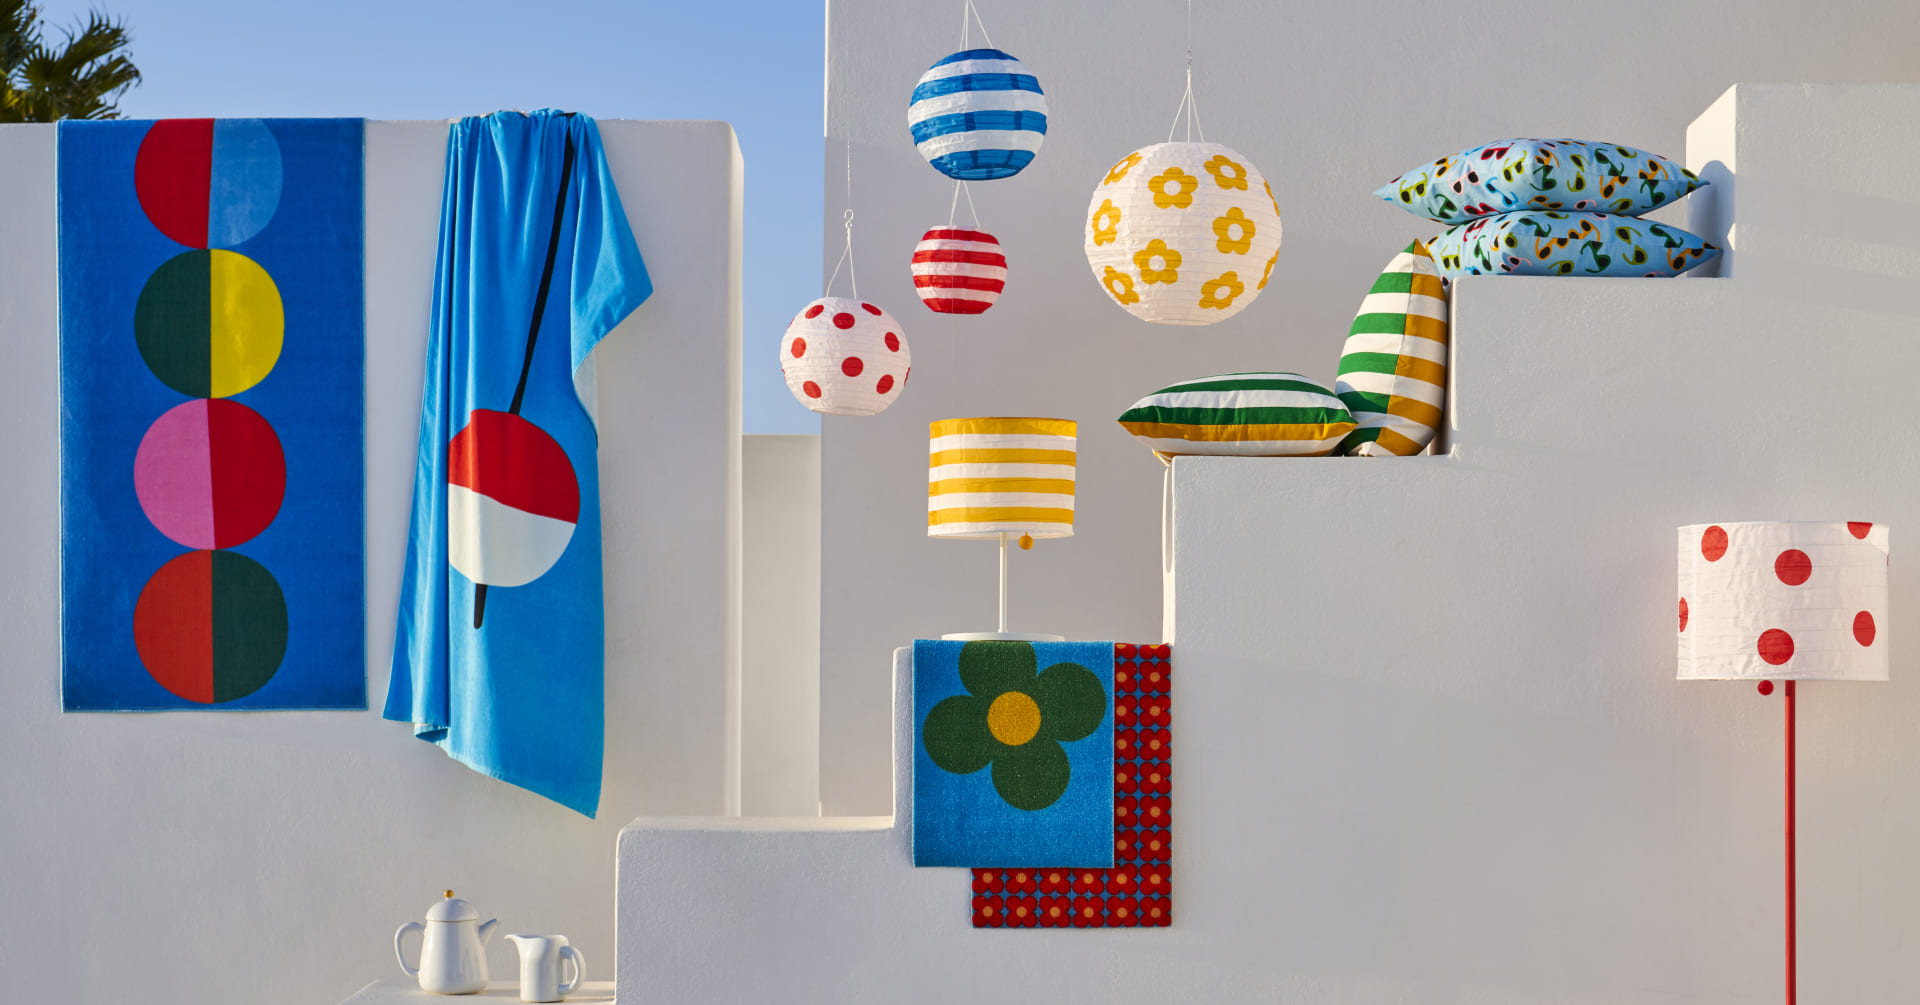 IKEA, , Summer, Furniture, Cloth Napkins, Basketball at the 2019 Special Olympics World Summer Games – Women's tournament, , IKEA Catalogue, Design, Sommar, sommar 2019, Room, Rectangle, Flag, Art